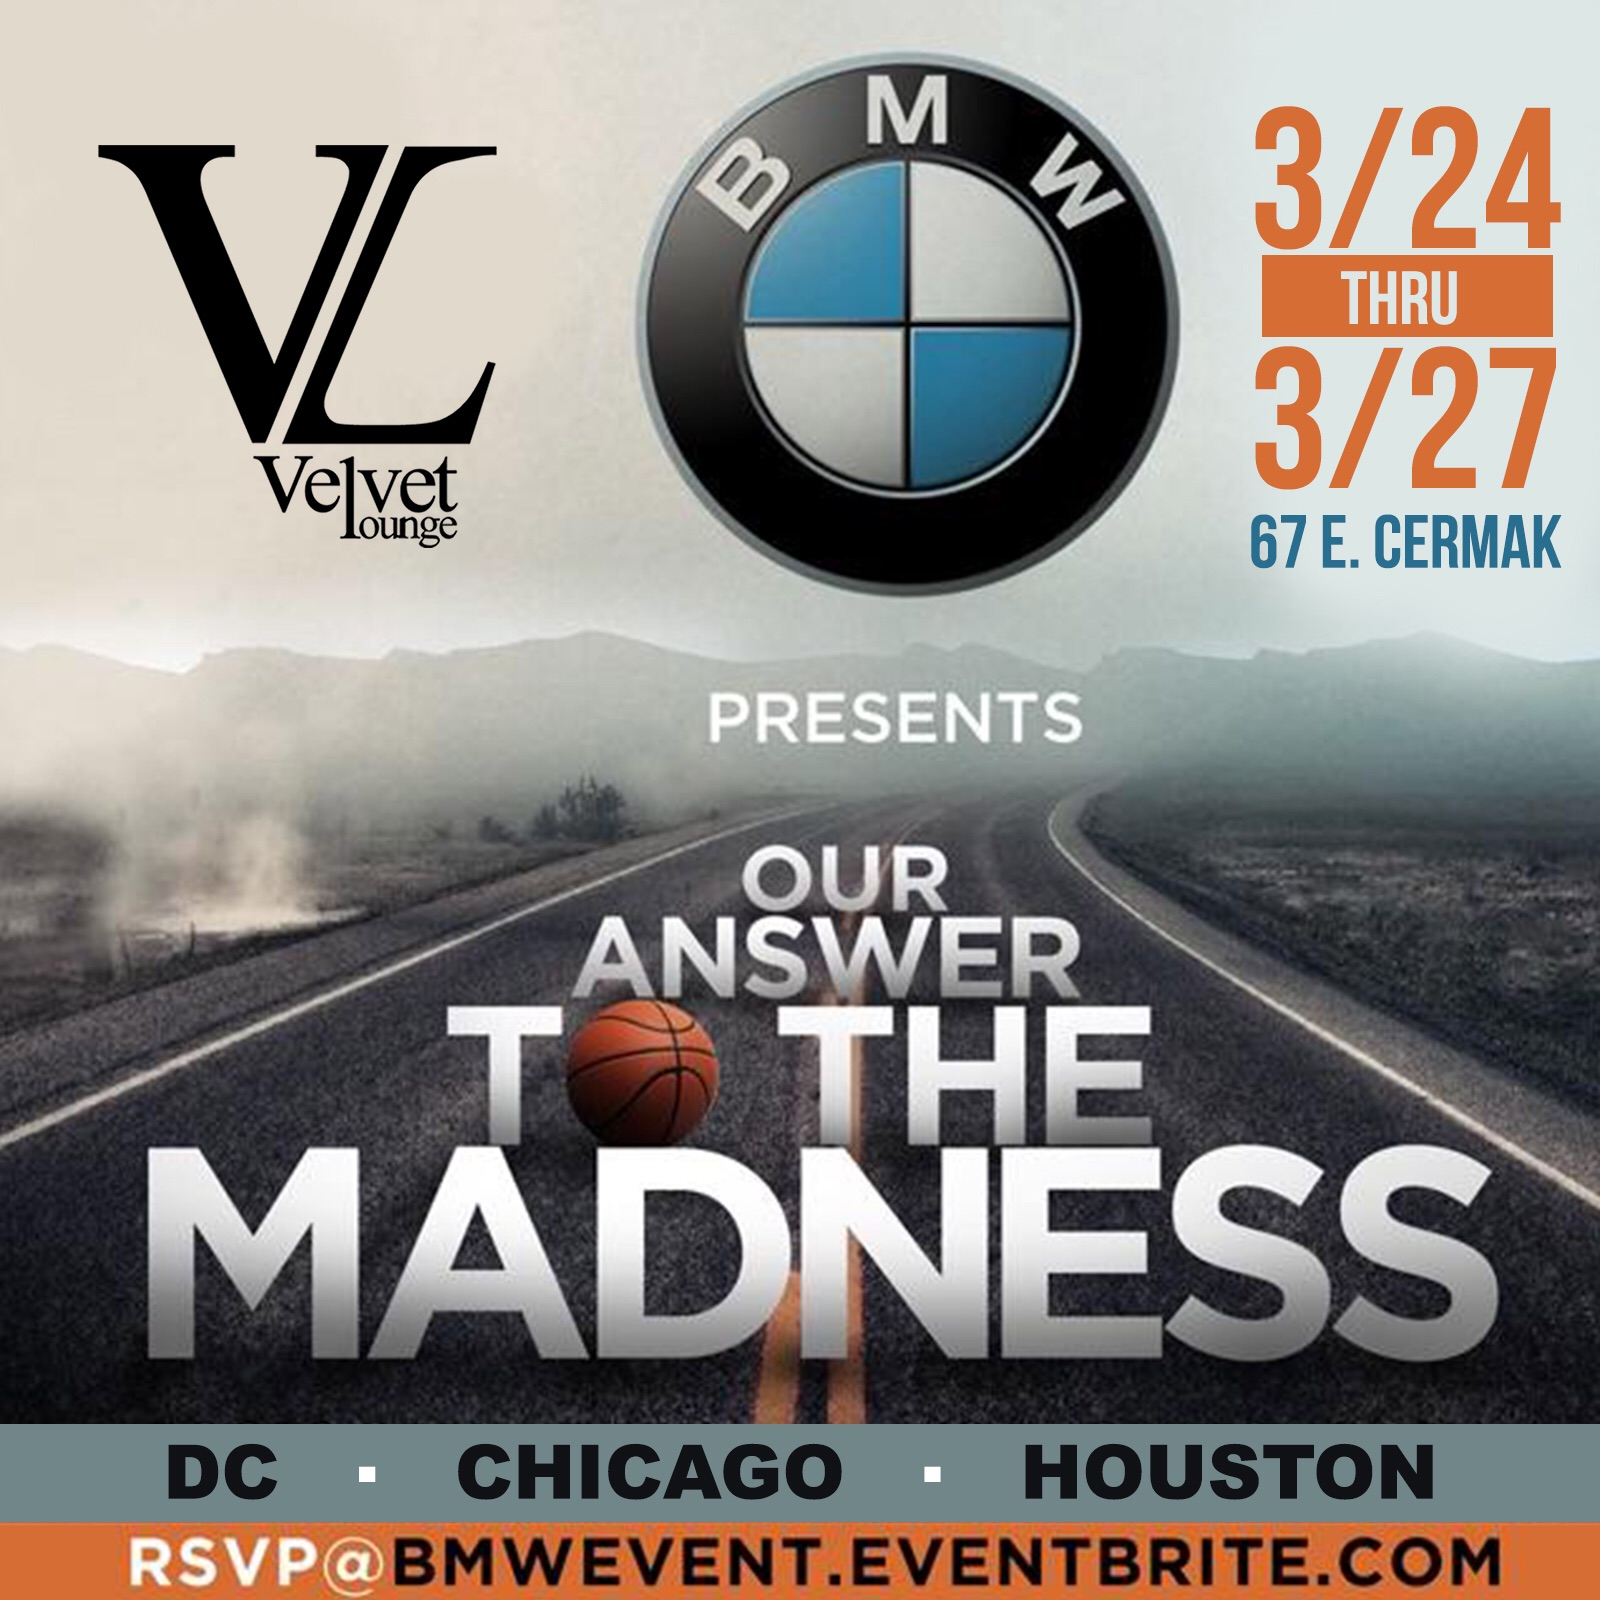 BMW Presents Our Answer To The Madness Chicago, Illinois